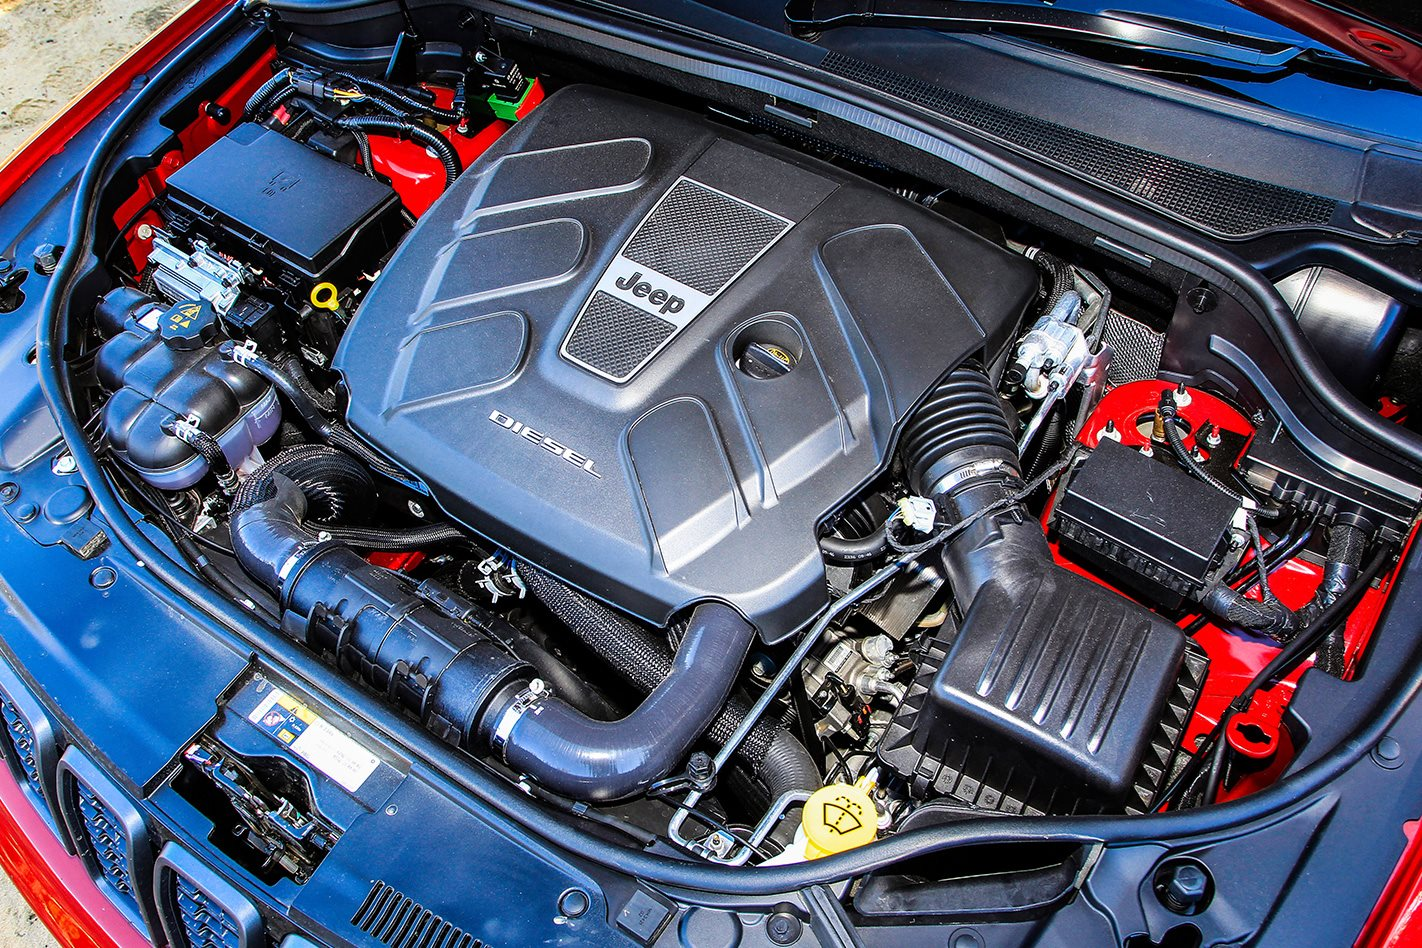 Jeep Grand Cherokee Trailhawk engine